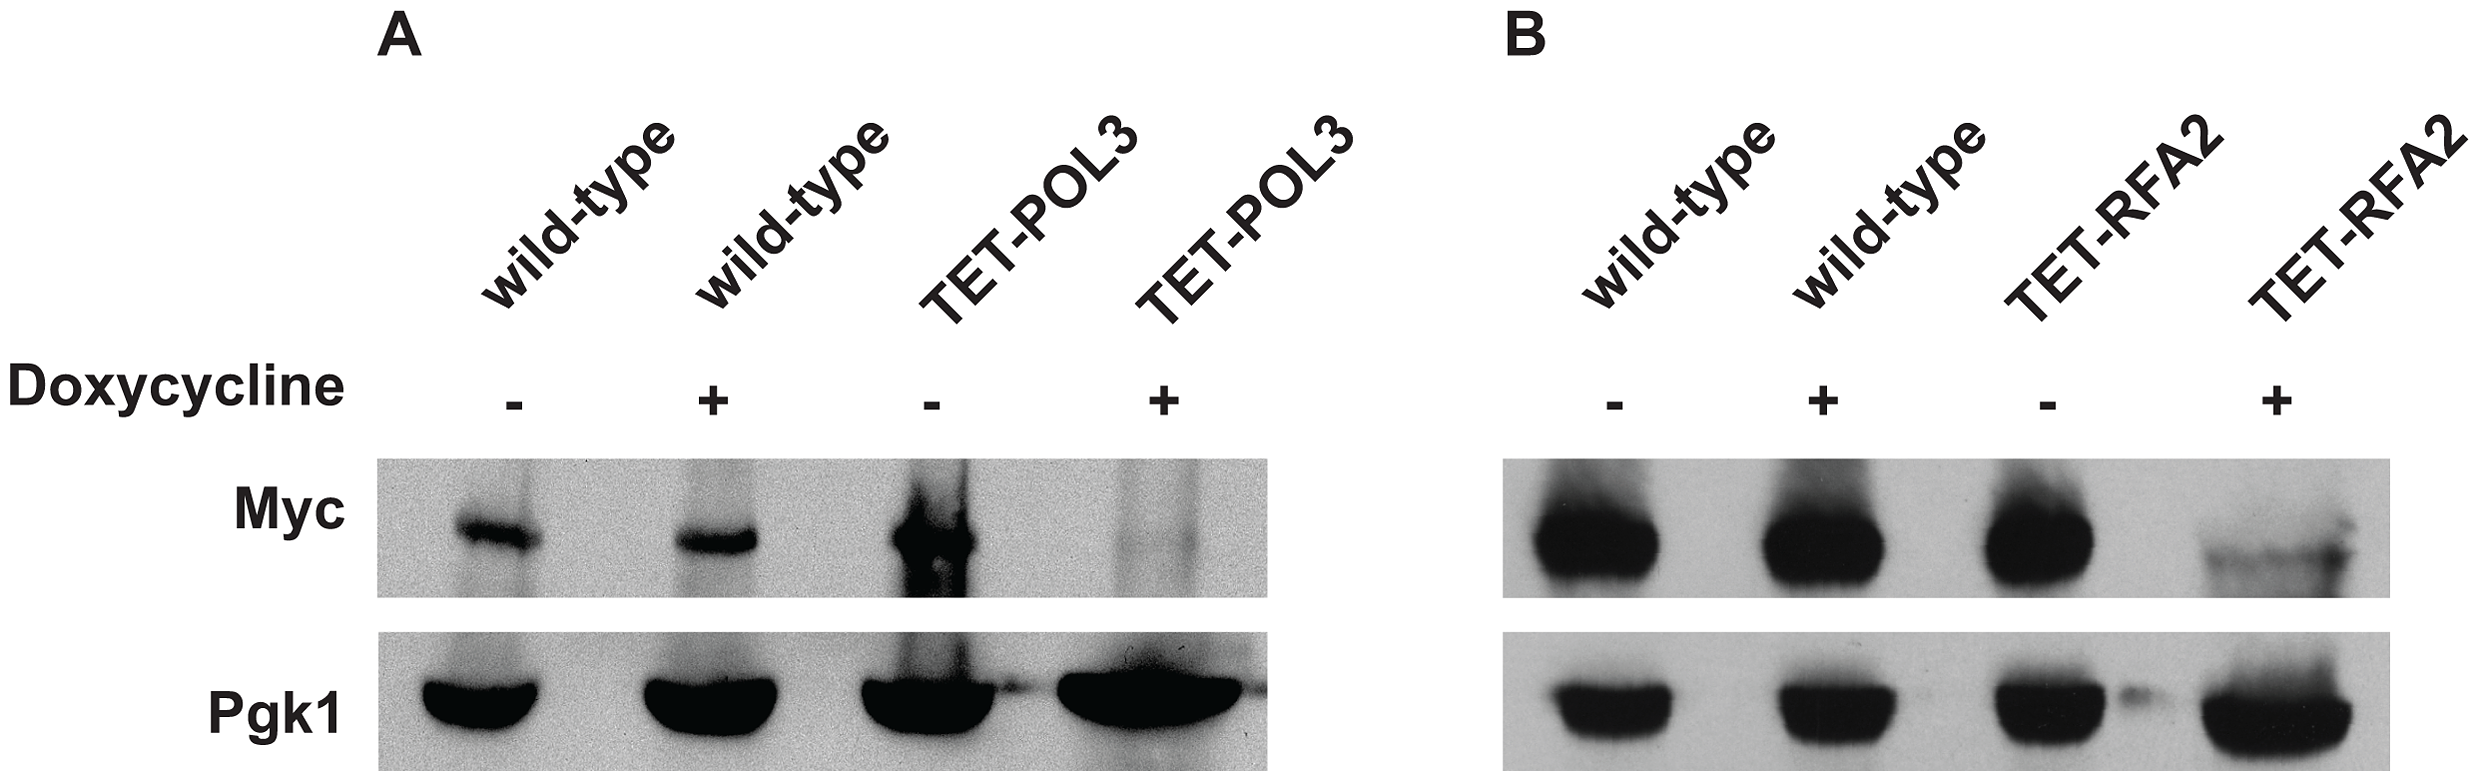 Analysis of protein levels of Pol3 and Rfa2 in the wild-type and tetracycline downregulatable strains.